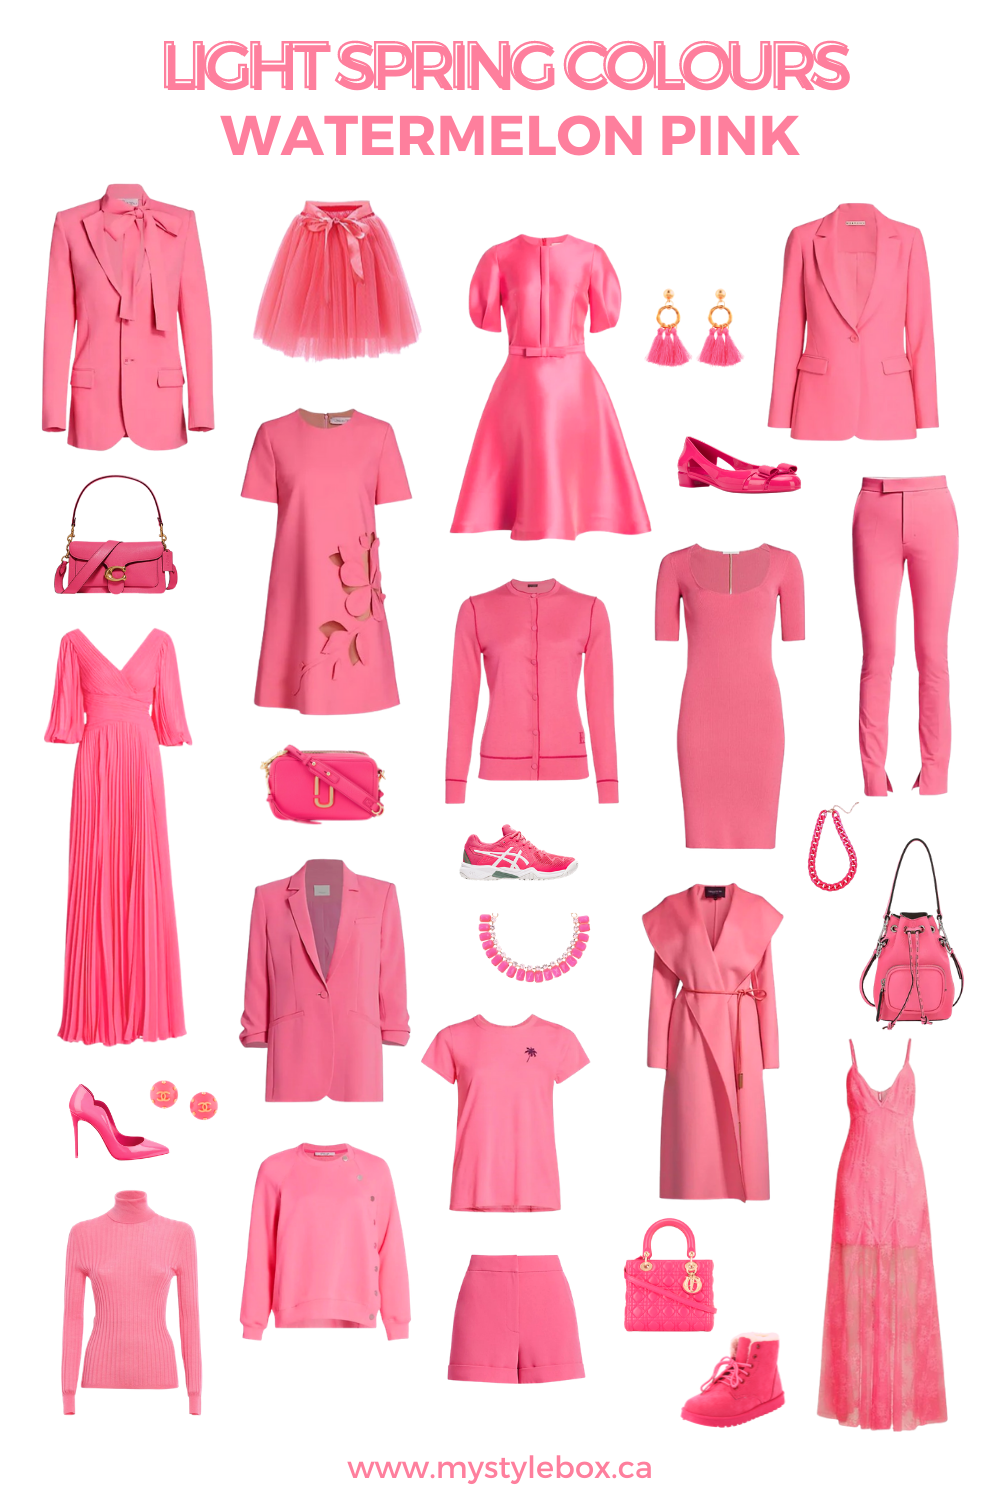 LIGHT SPRING COLOURS WATERMELON PINK